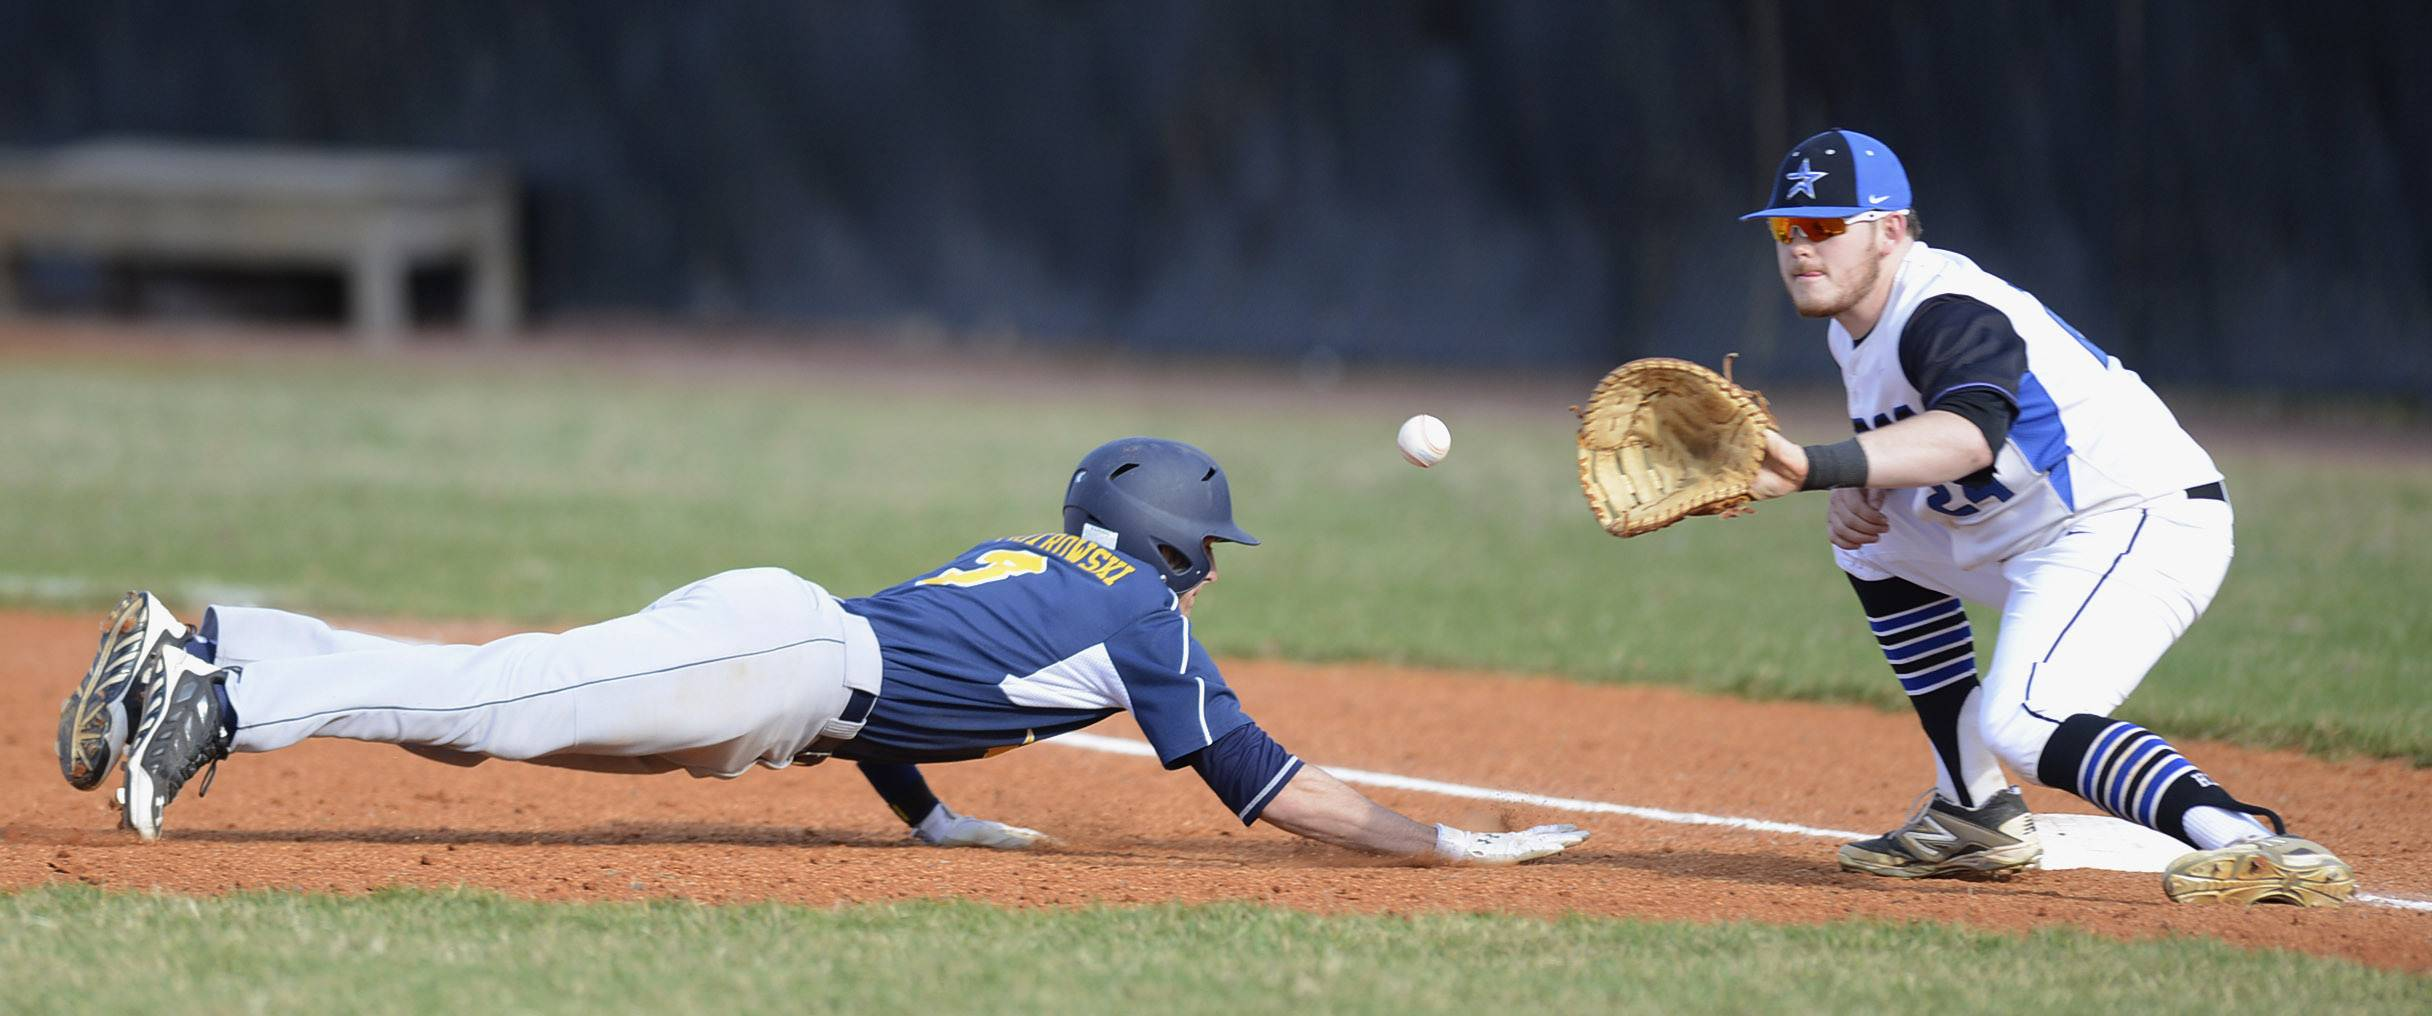 Neuqua Valley's Josh Piotrowski slides back safely to first base and St. Charles North's Jack Dennis in the first inning on Friday, April 11.